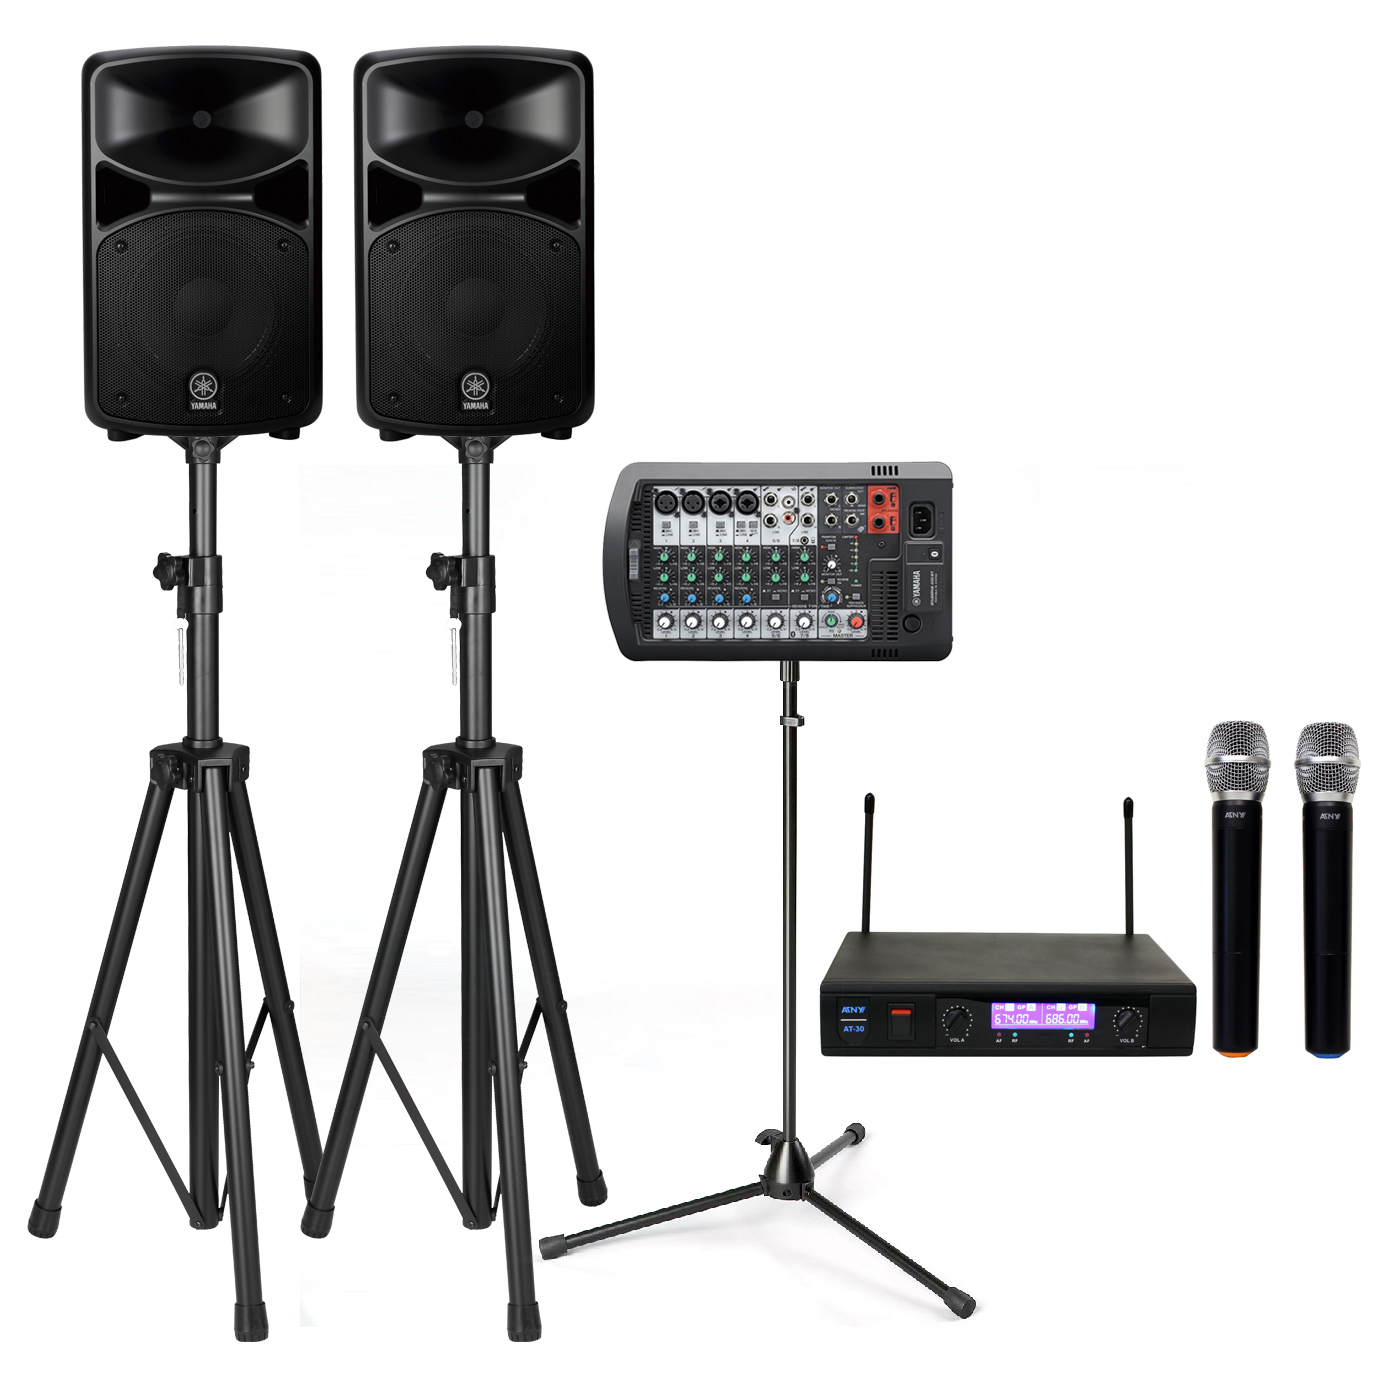 yamaha stagepas 400bt 400w pa system with stands atny at. Black Bedroom Furniture Sets. Home Design Ideas